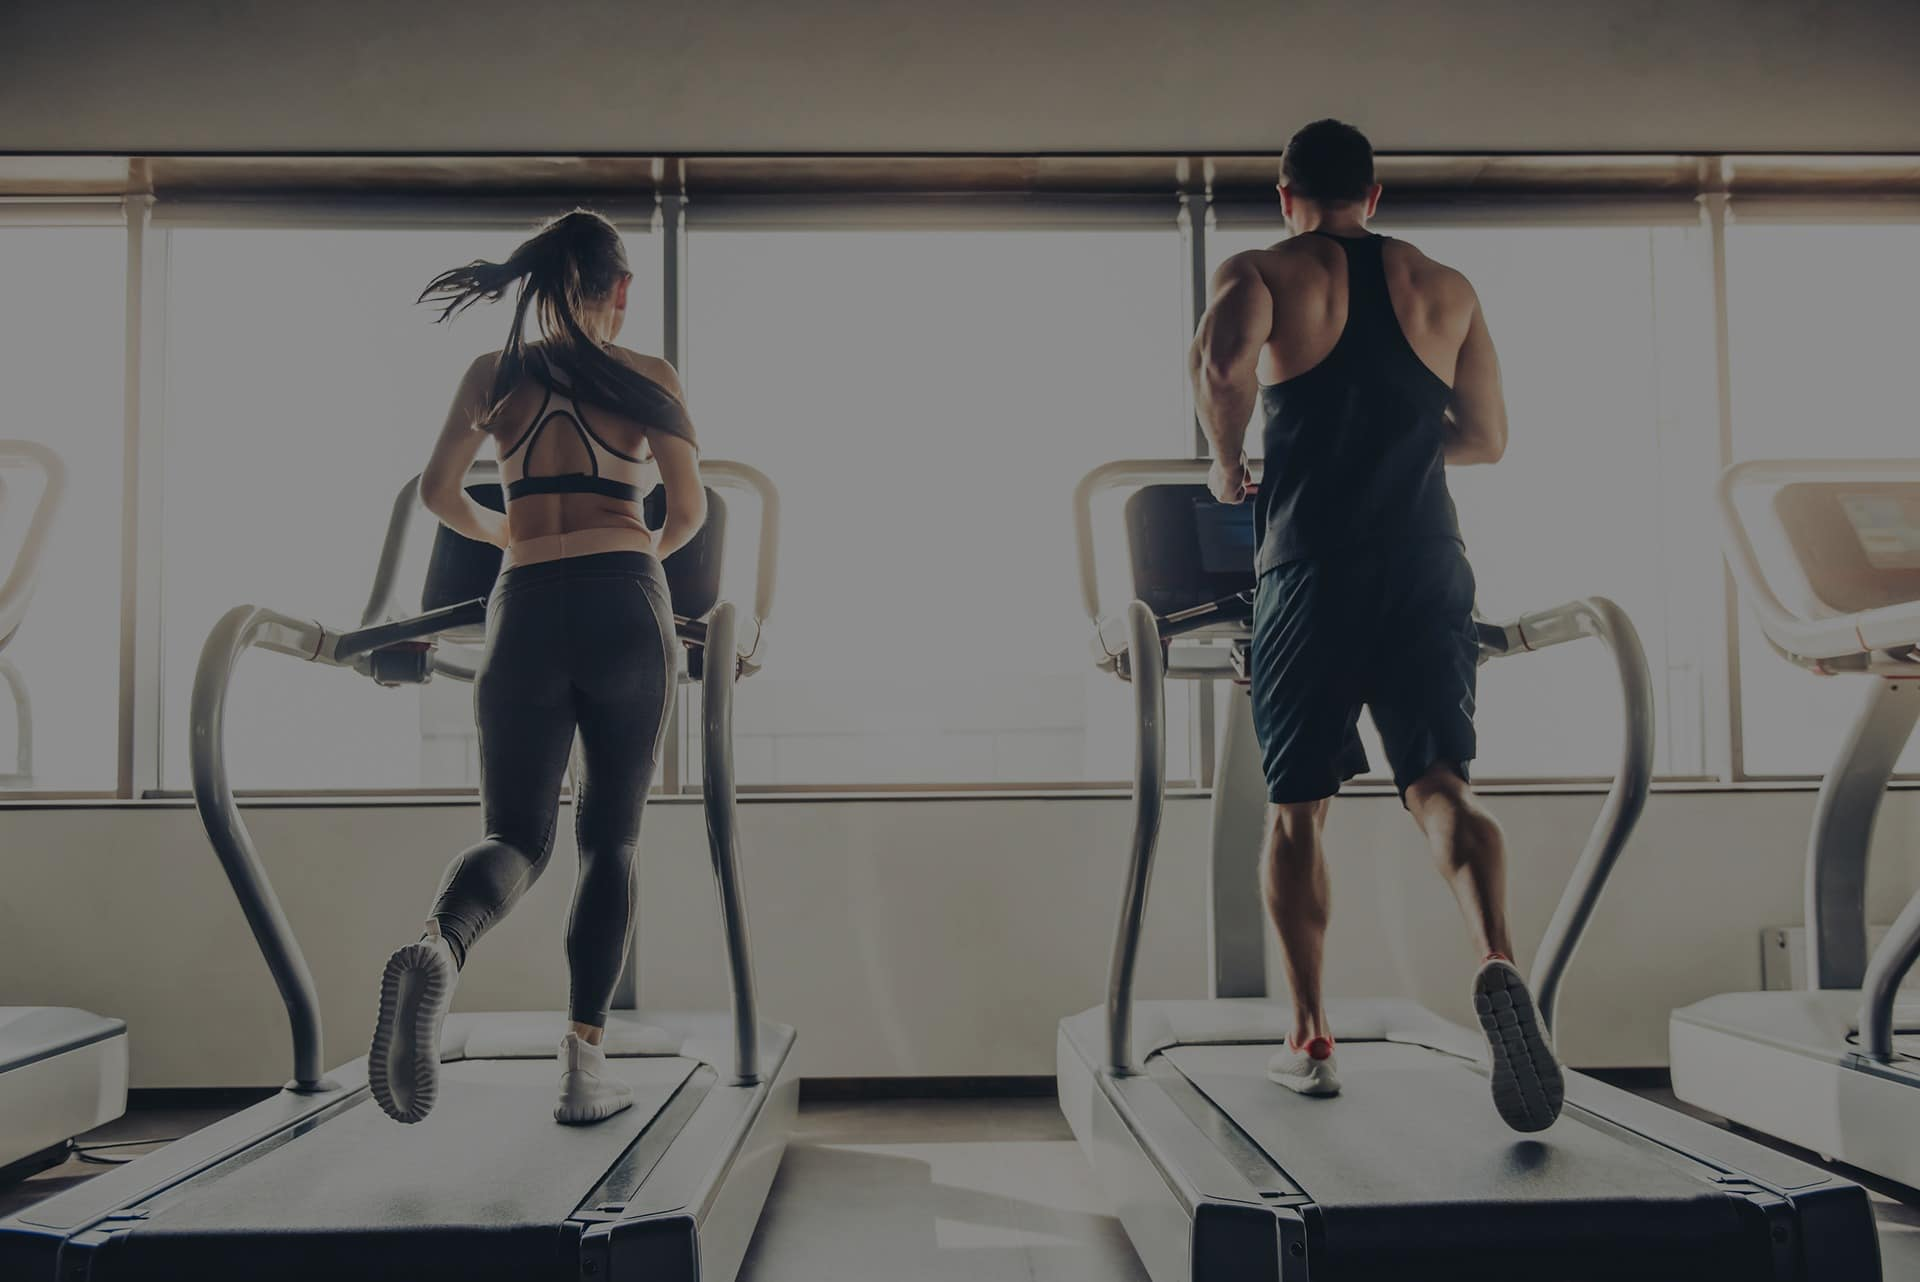 Runners on a treadmill